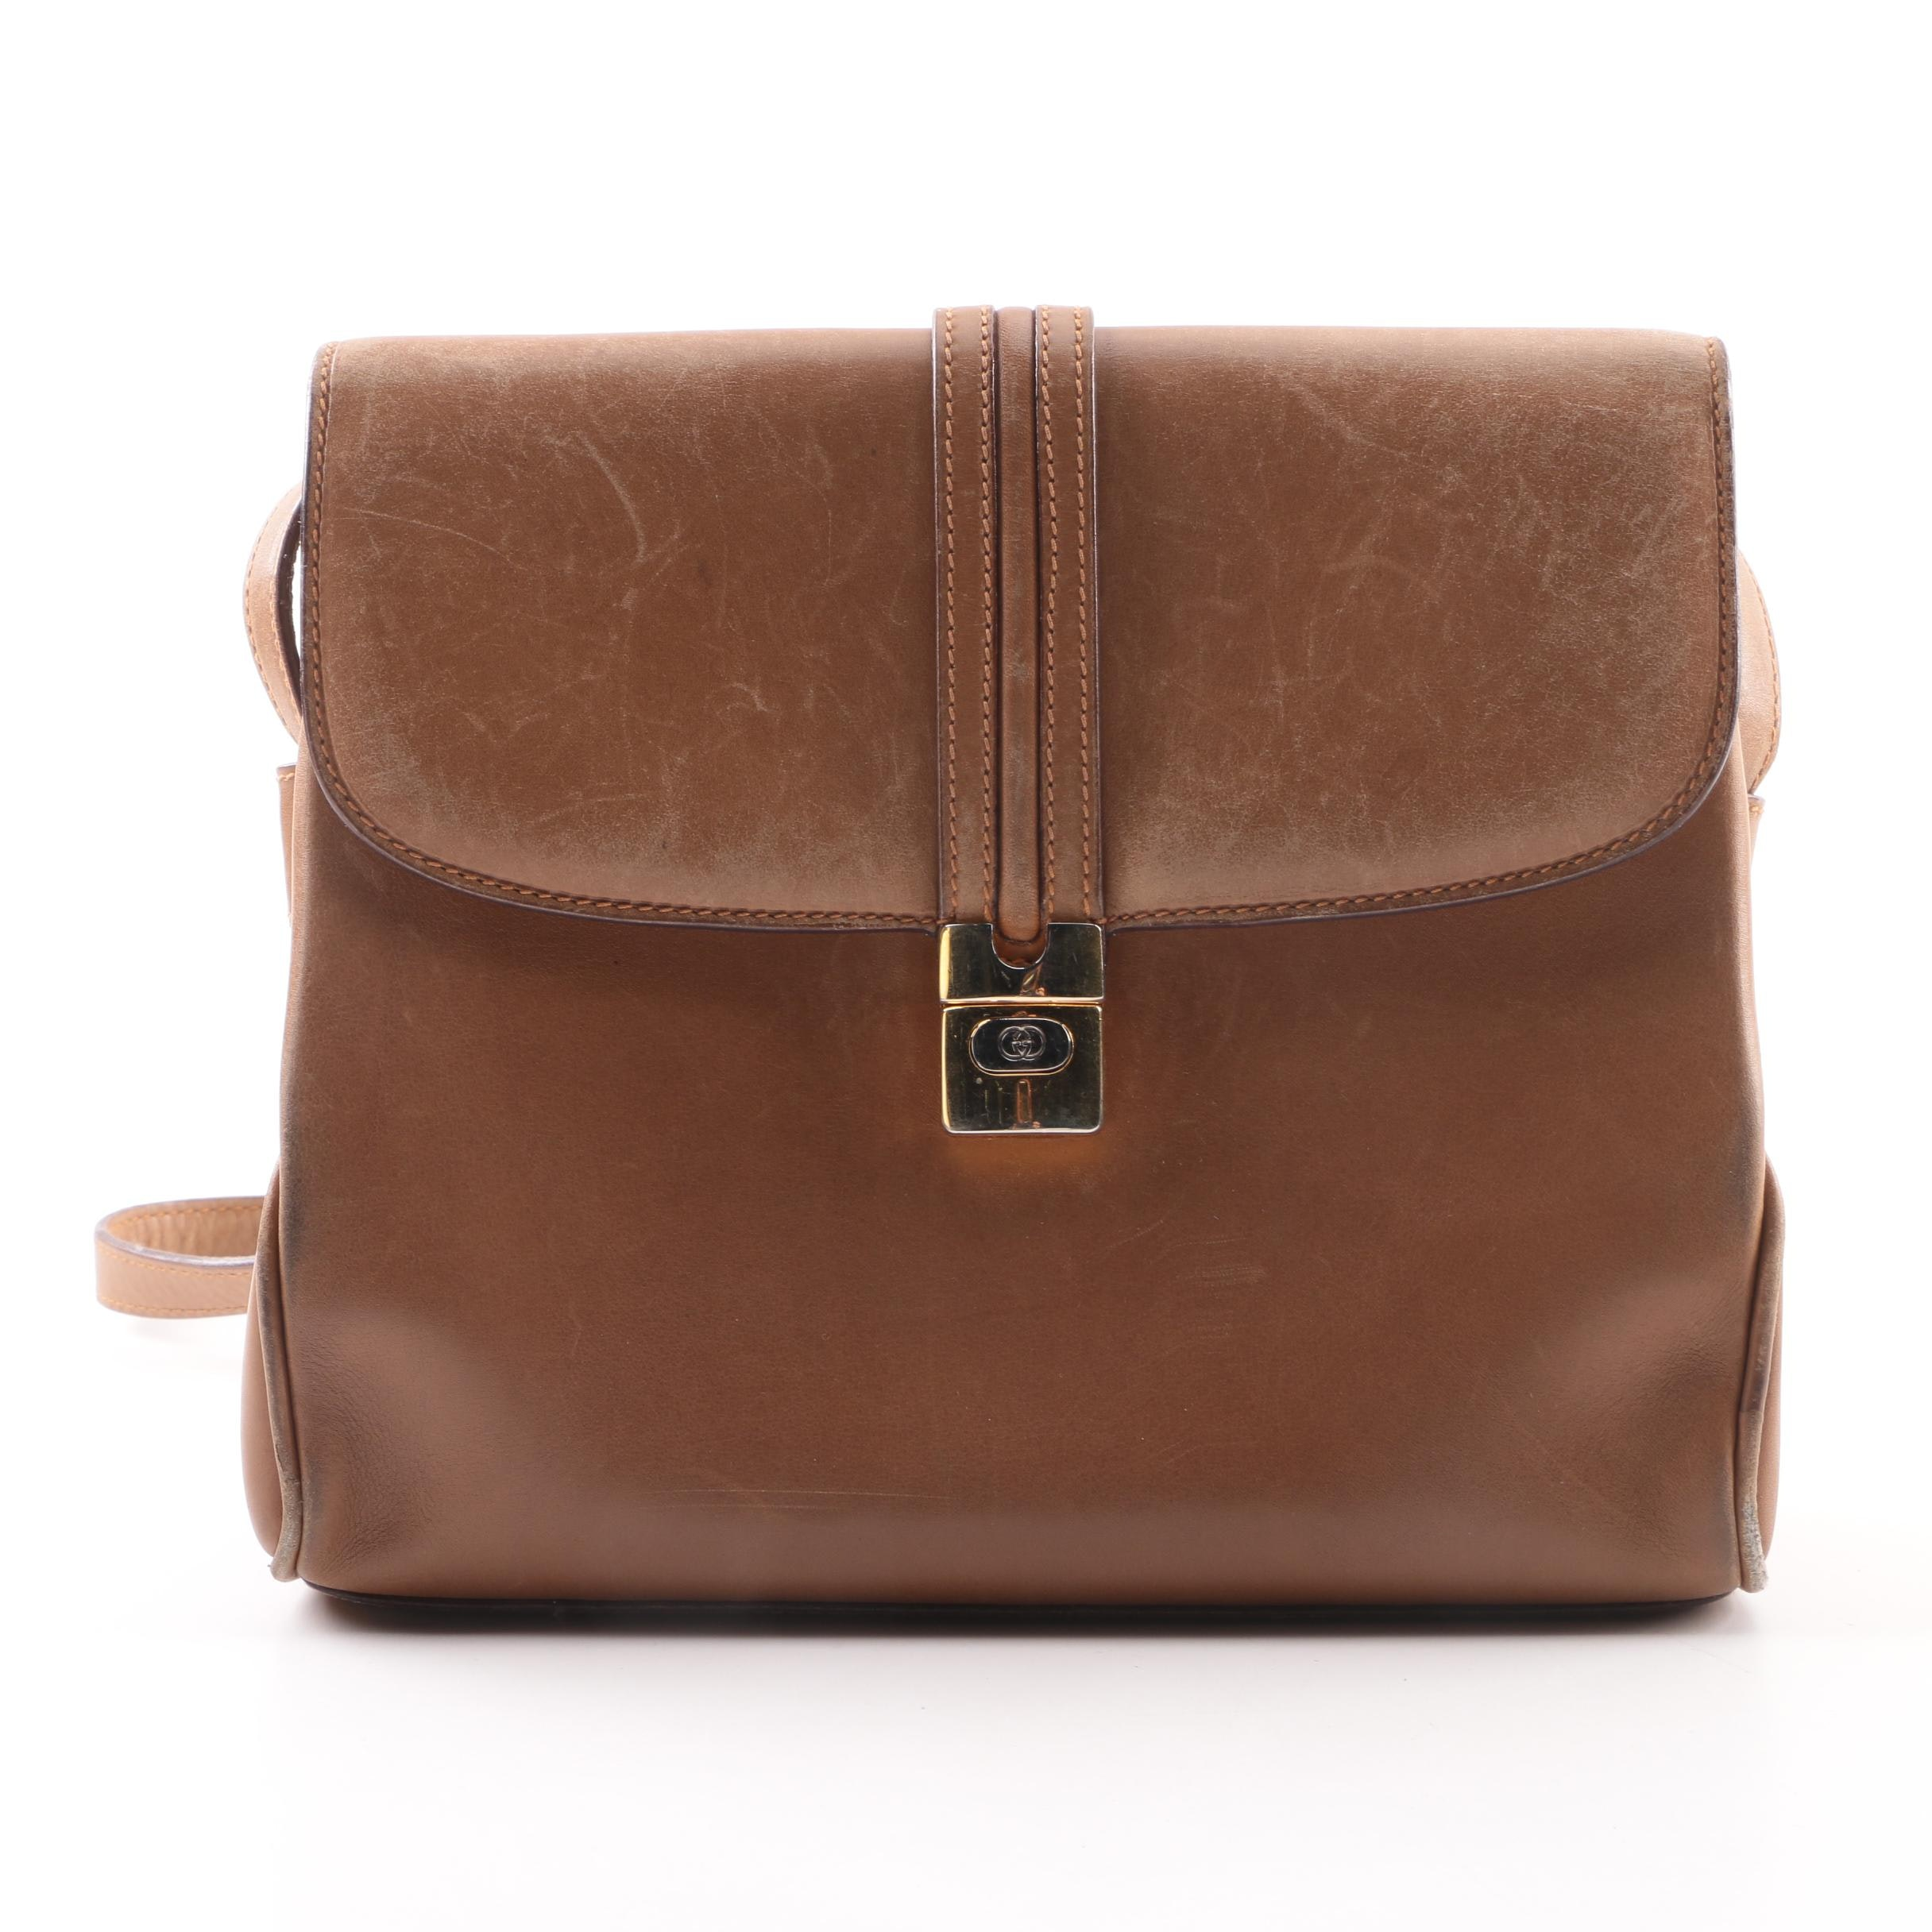 Vintage Gucci Brown Leather Shoulder Bag